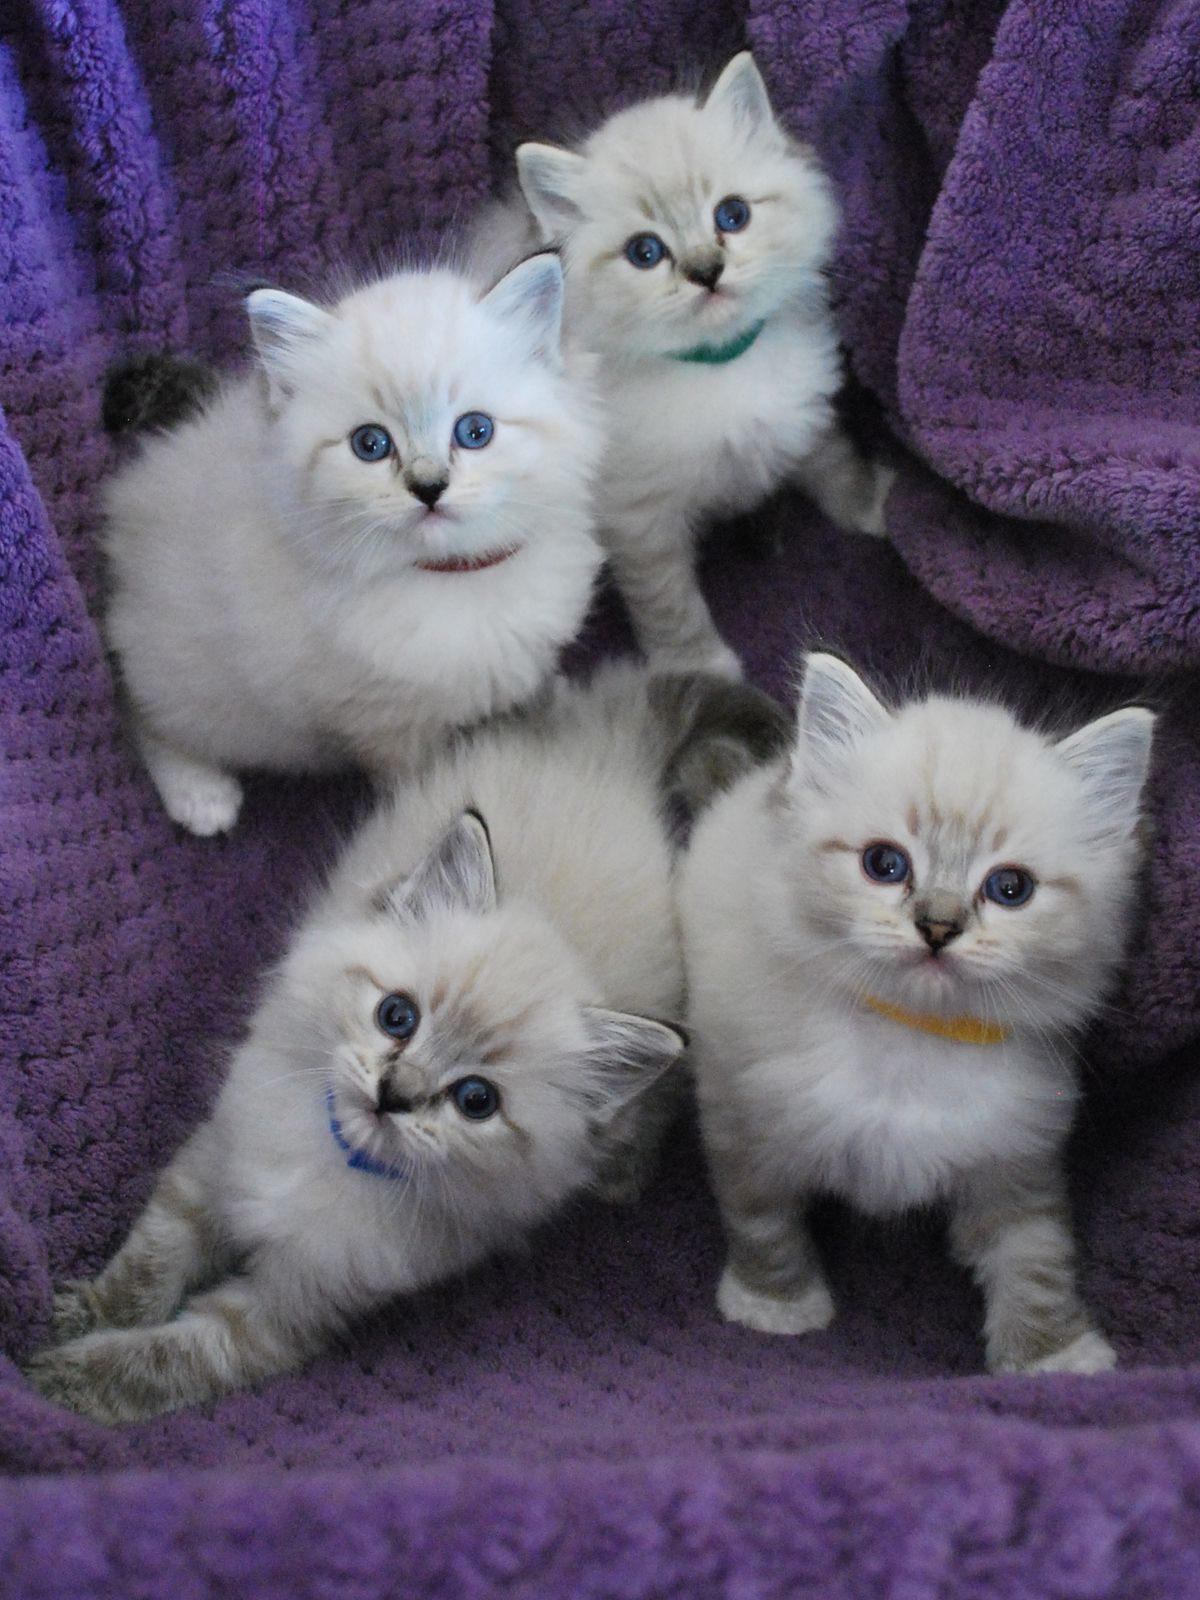 Great Contrast With The Purple Cloth And White Kittens You Can